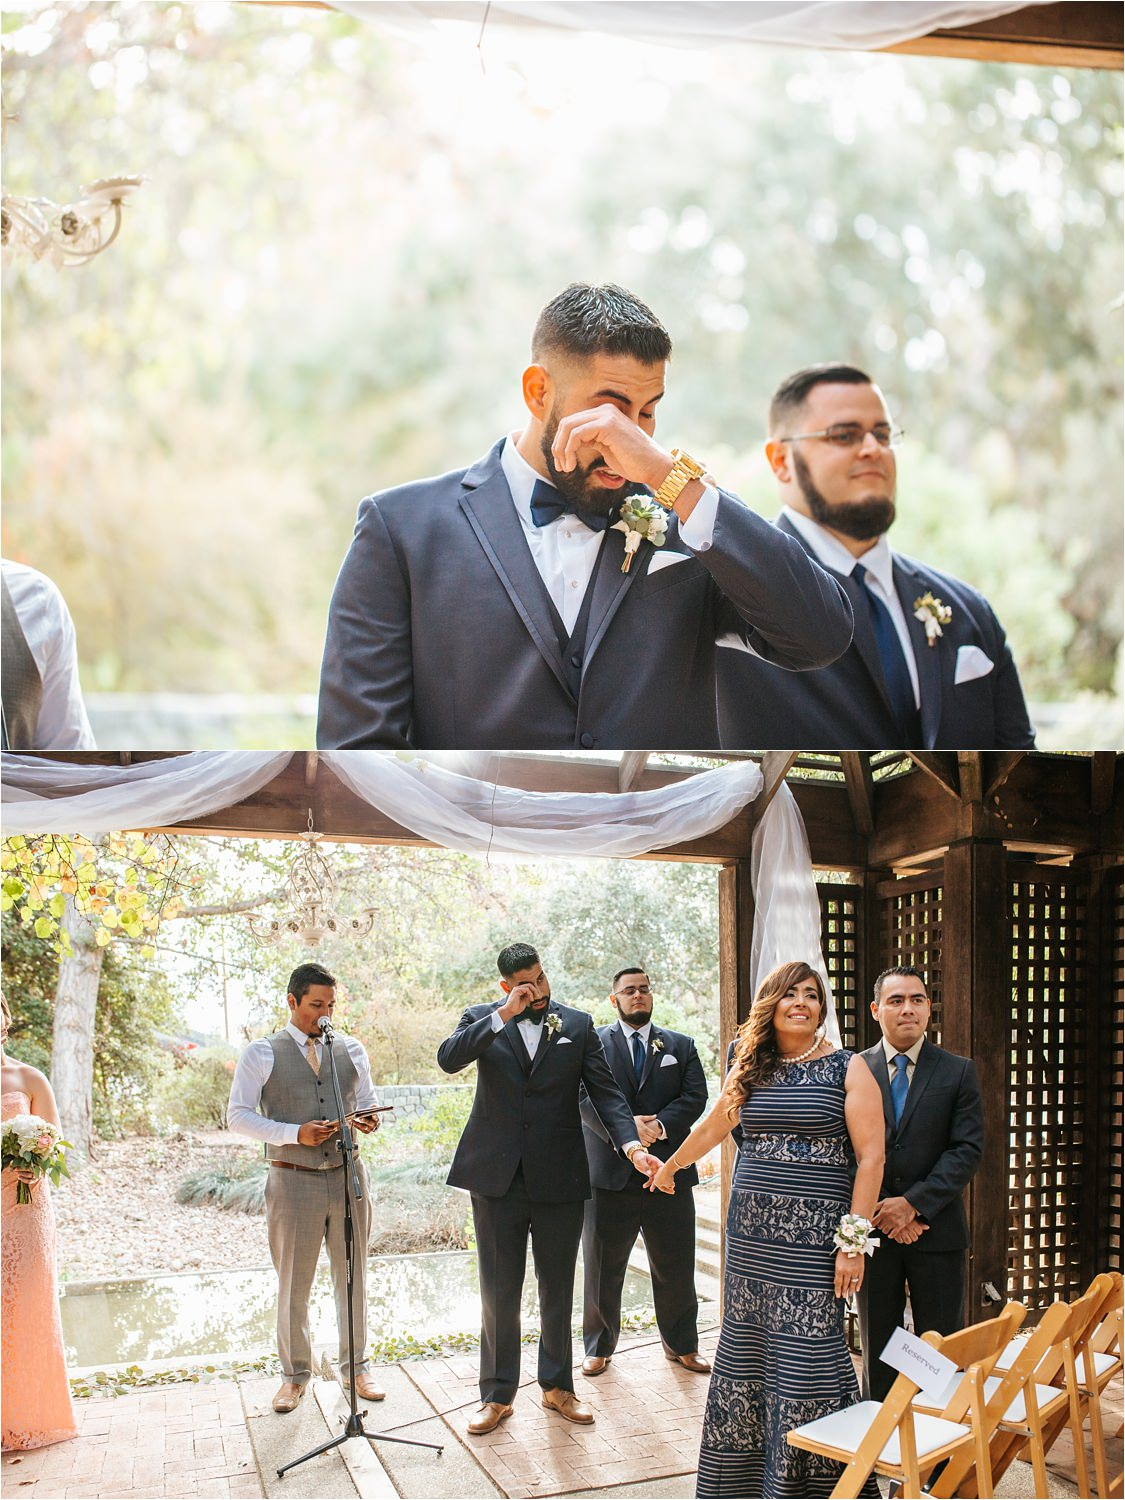 Groom seeing bride walking down the aisle - emotional groom - http://brittneyhannonphotography.com